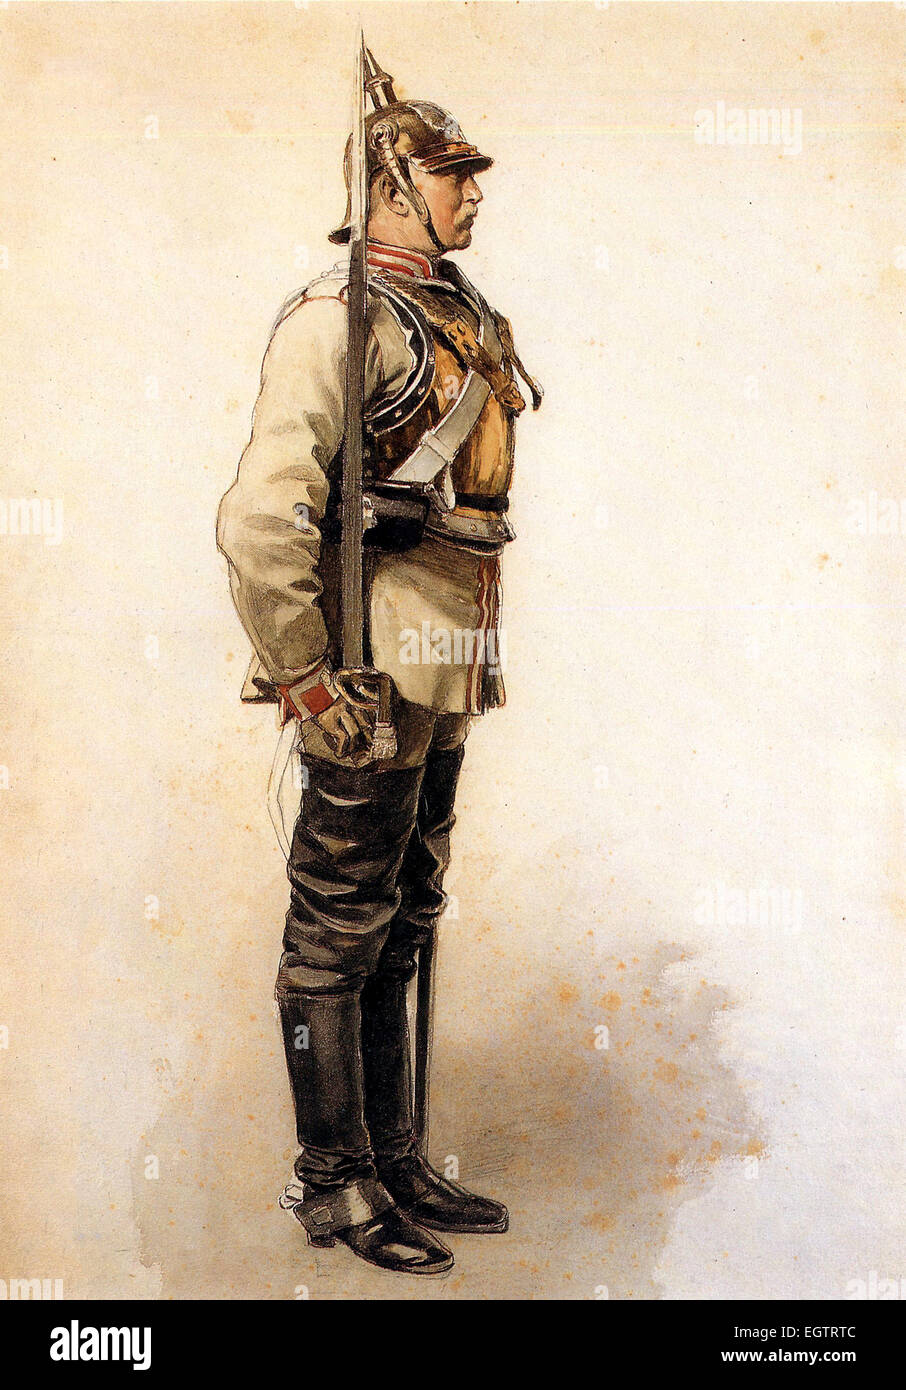 Prussian Garde du Corps cuirassier during the Franco-Prussian War. - Stock Image